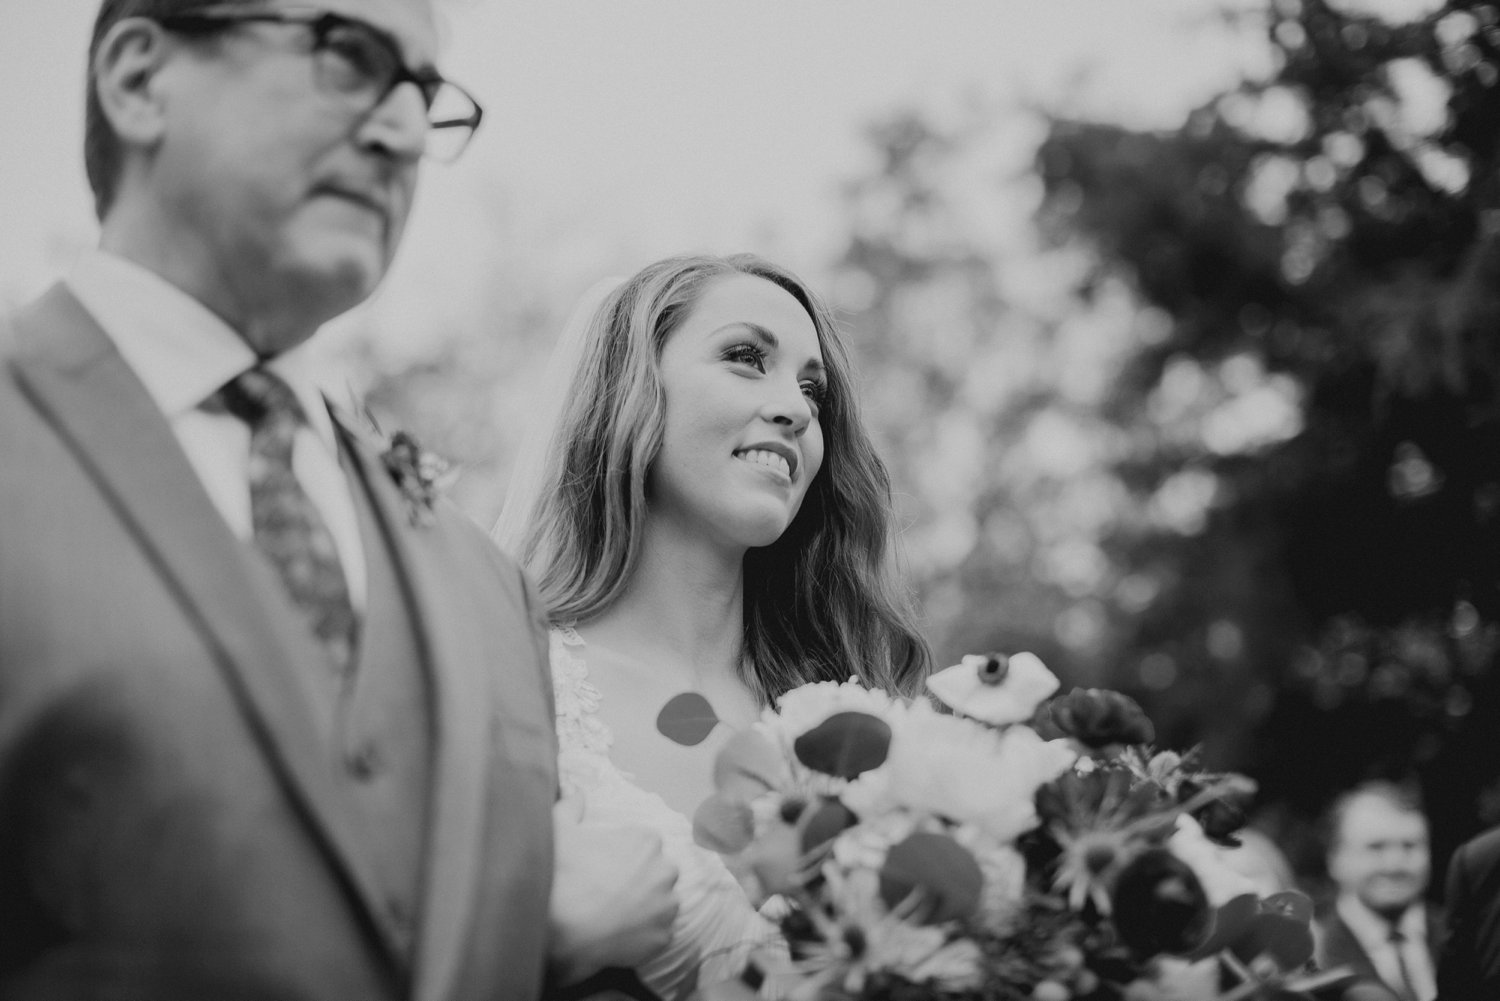 artistic wedding photographer dallas 060.jpg